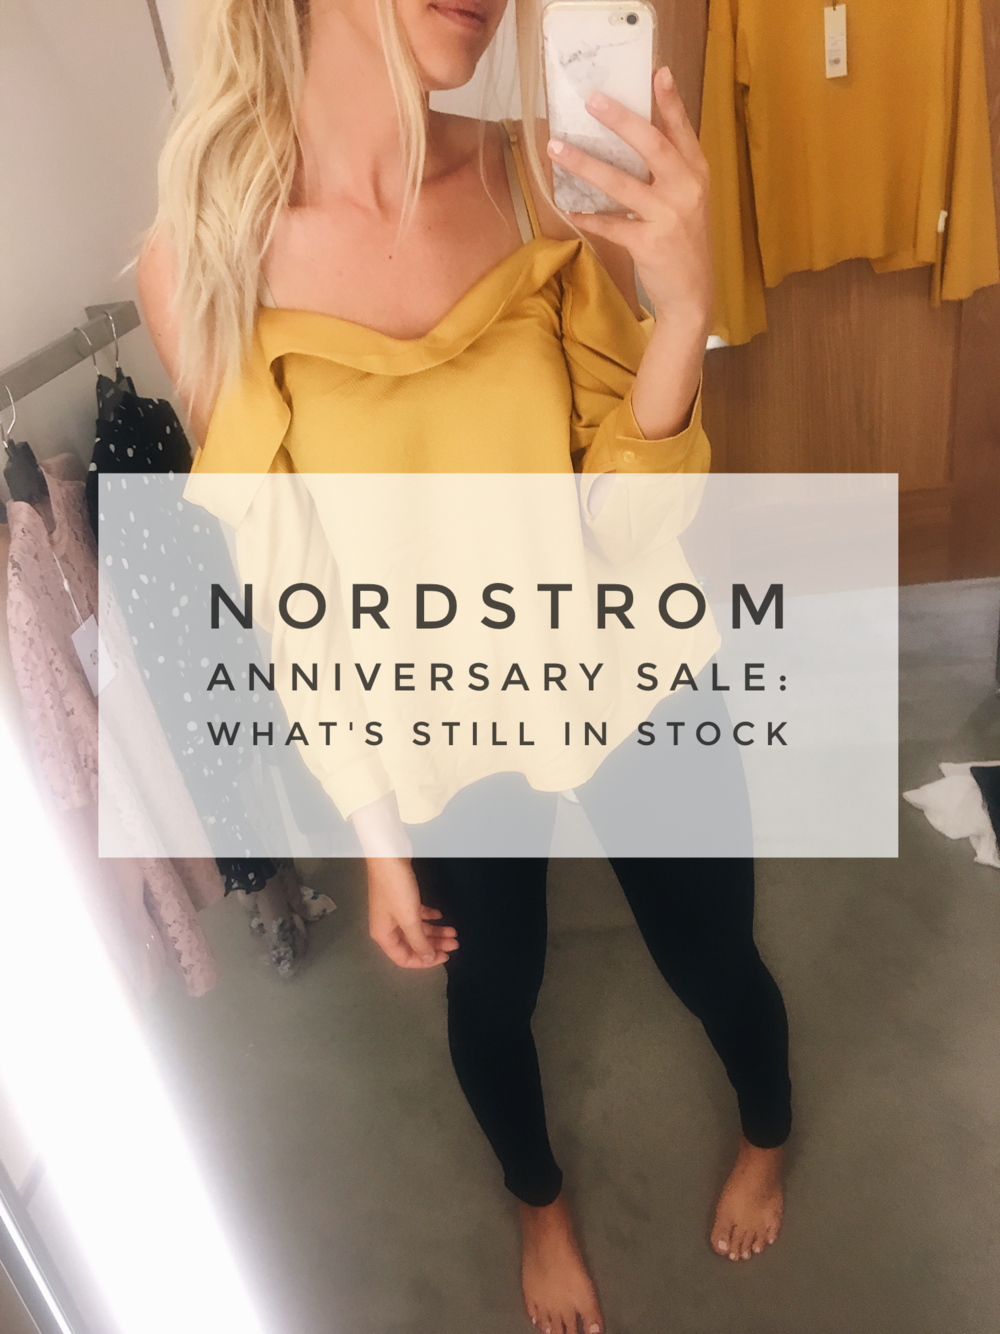 Nordstrom Anniversary Sale: What's Still In Stock